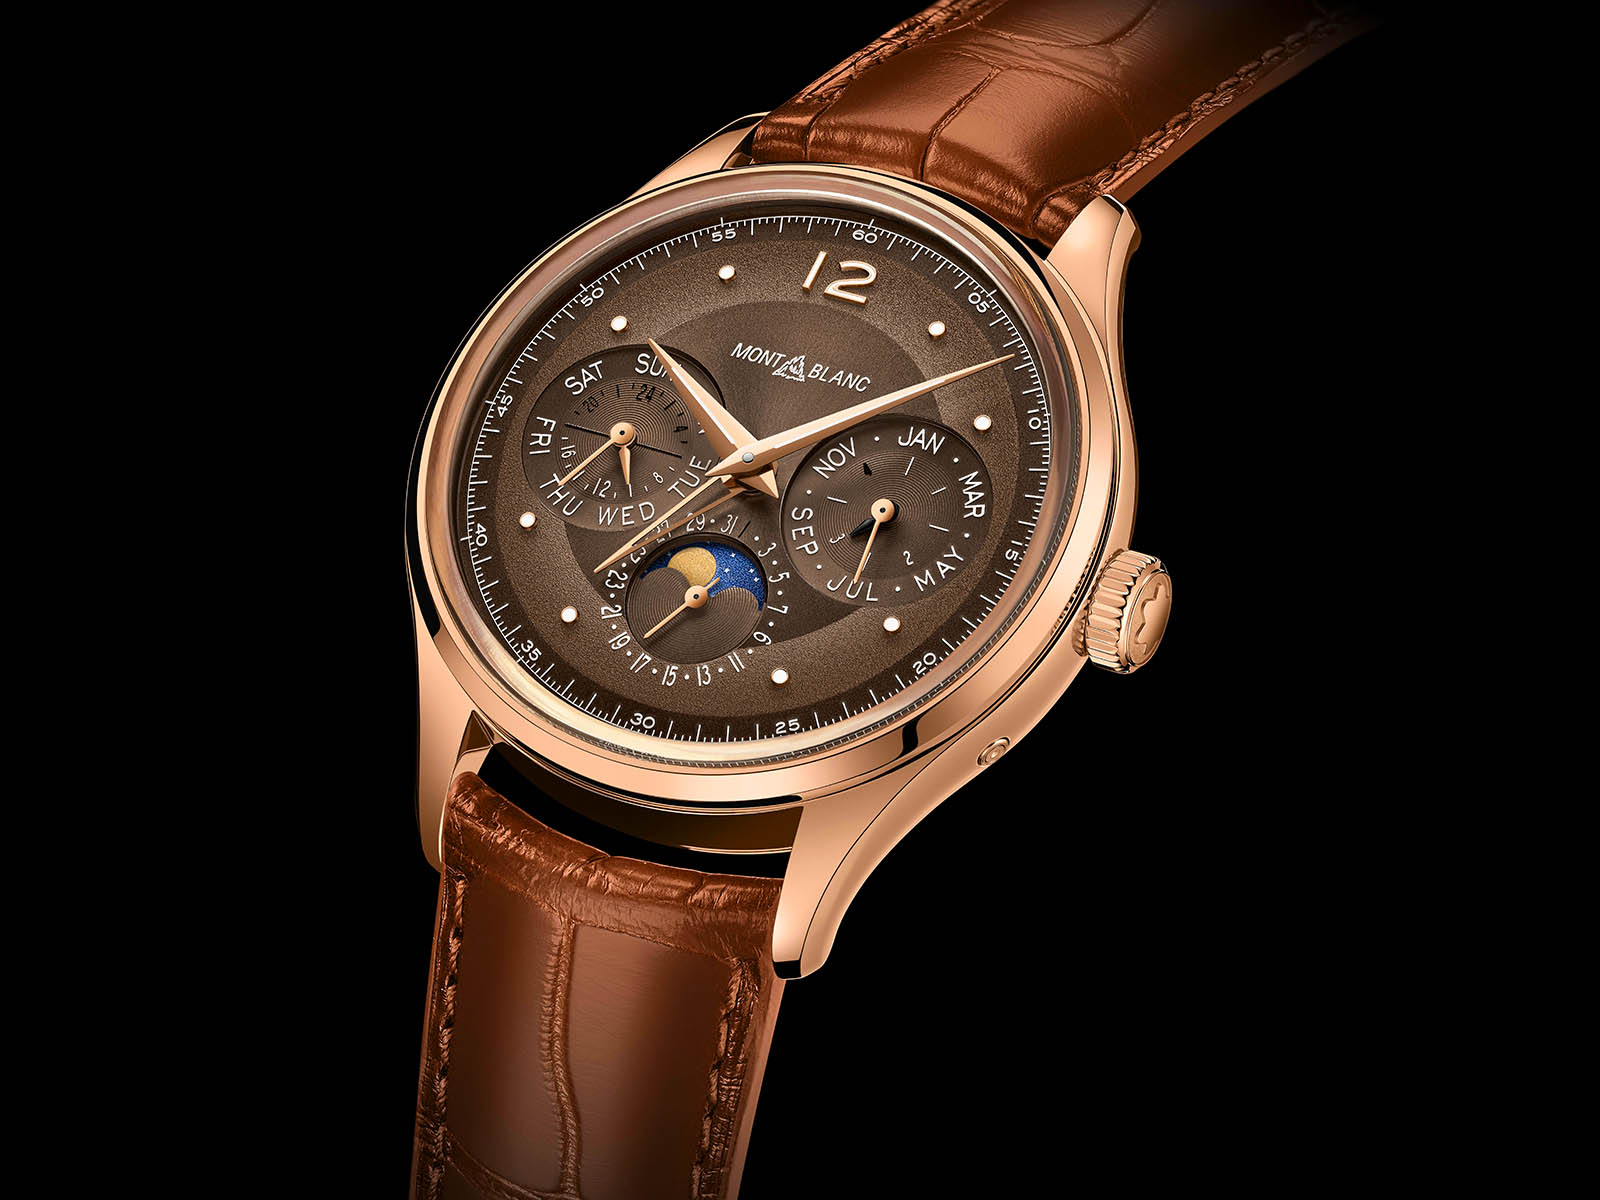 128669-montblanc-heritage-manufacture-perpetual-calendar-limited-edition-100-4.jpg